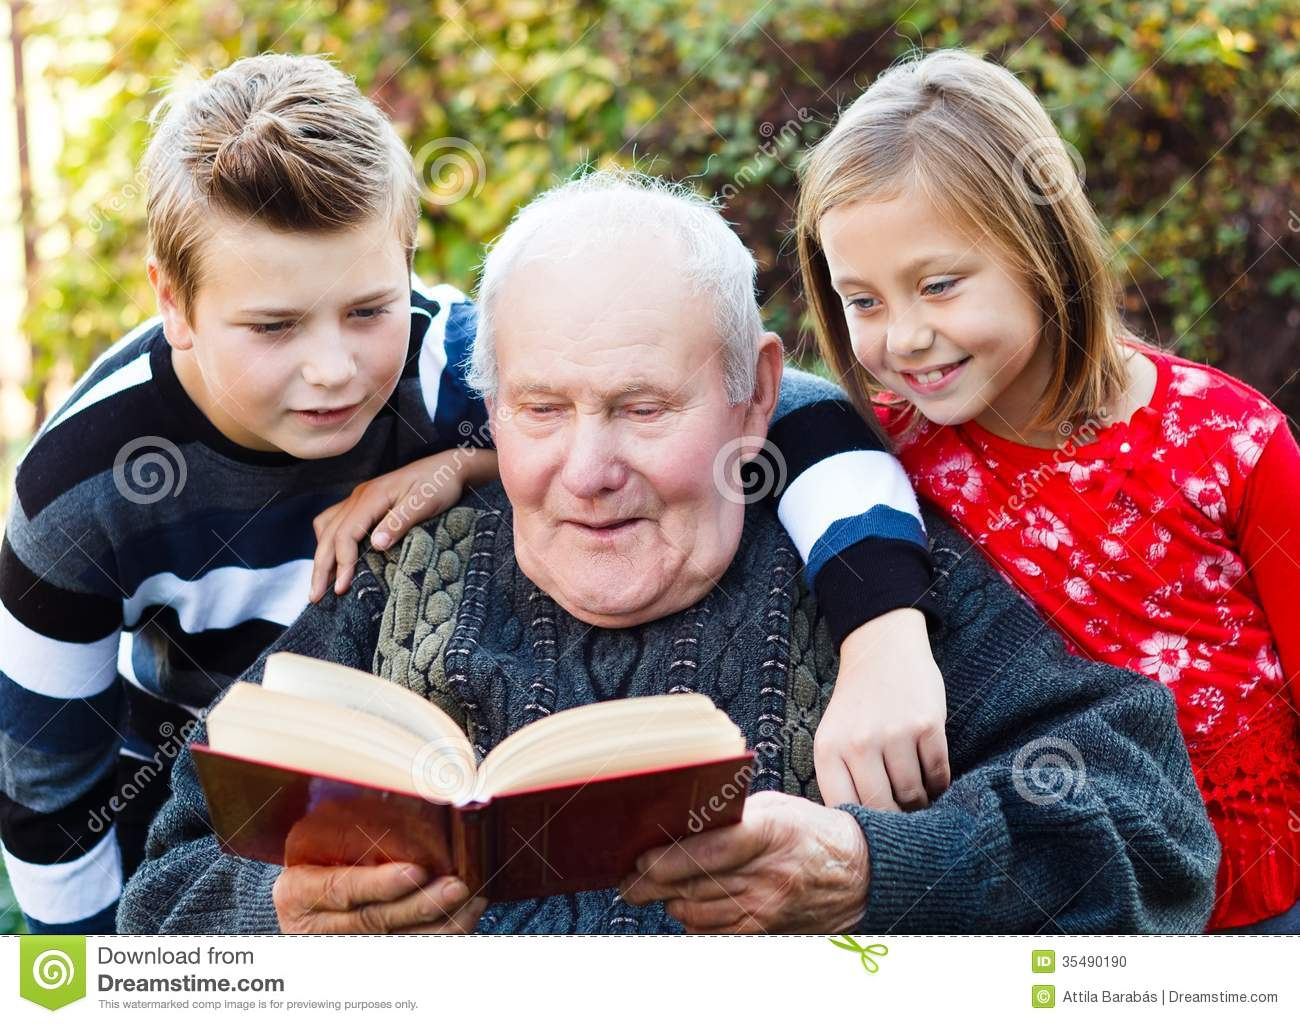 Stories About Grandparents and Grandchildren